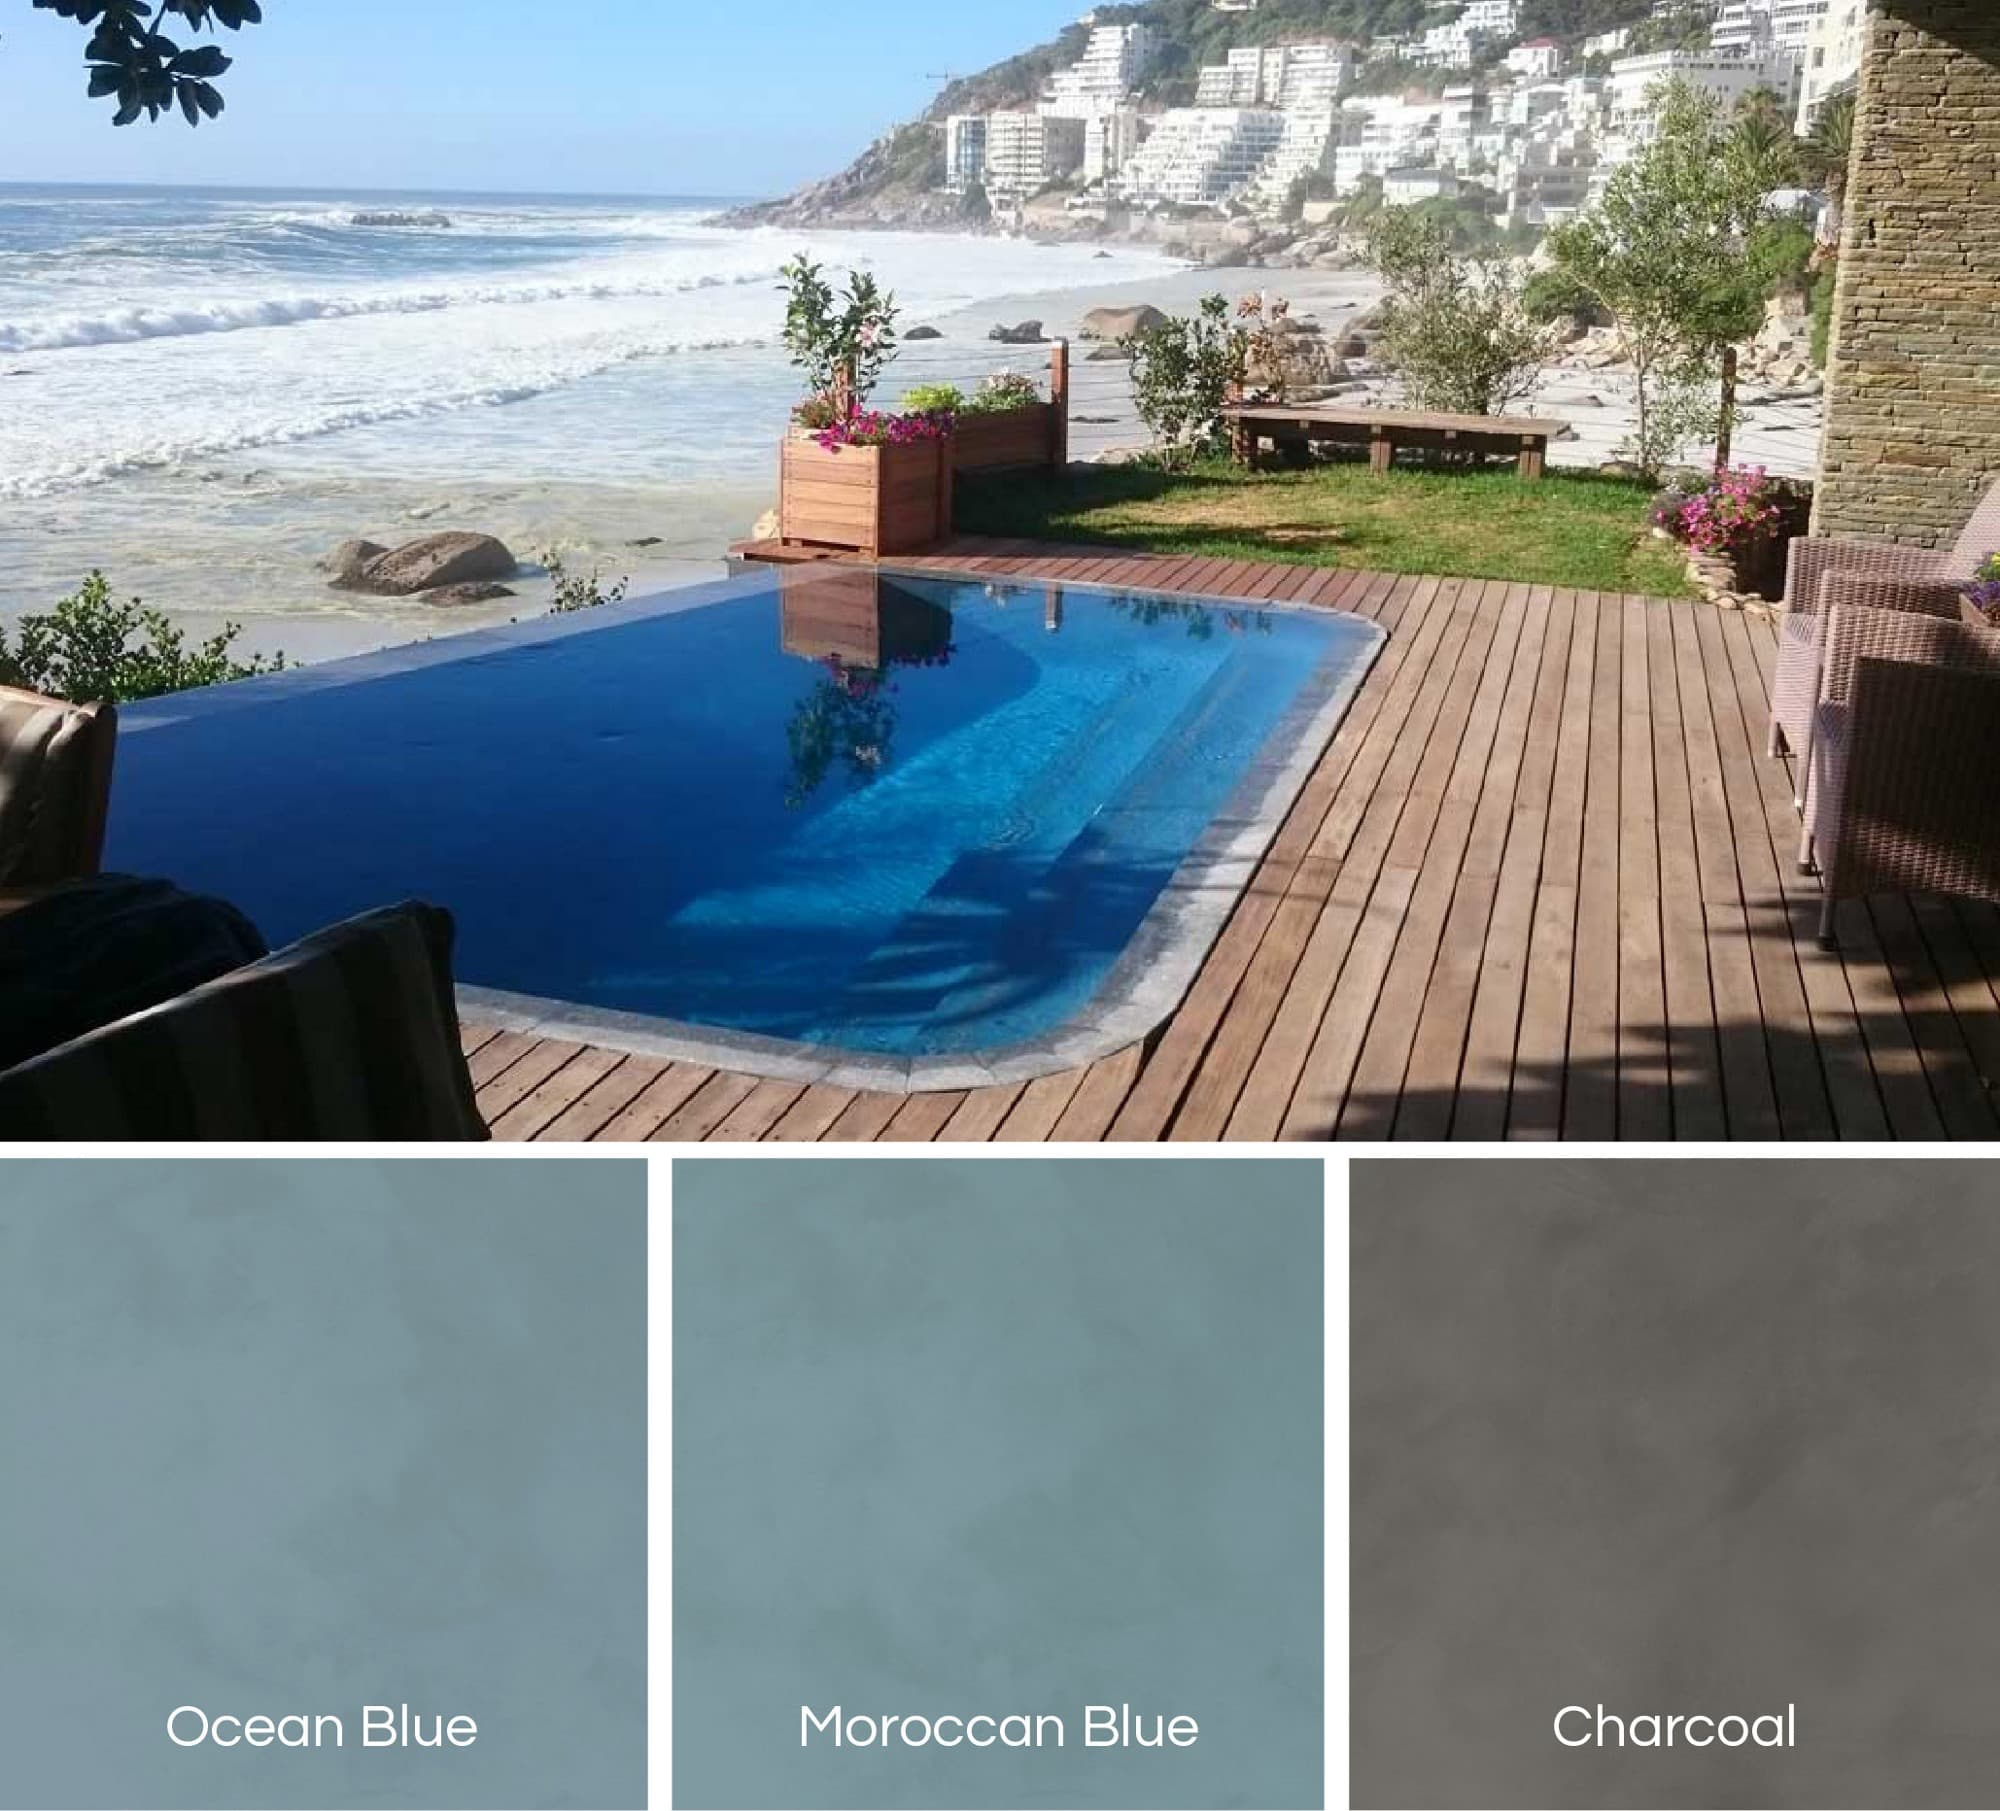 Cemcrete Poolcrete marble pool plaster also available in darker shades of blue and charcoal